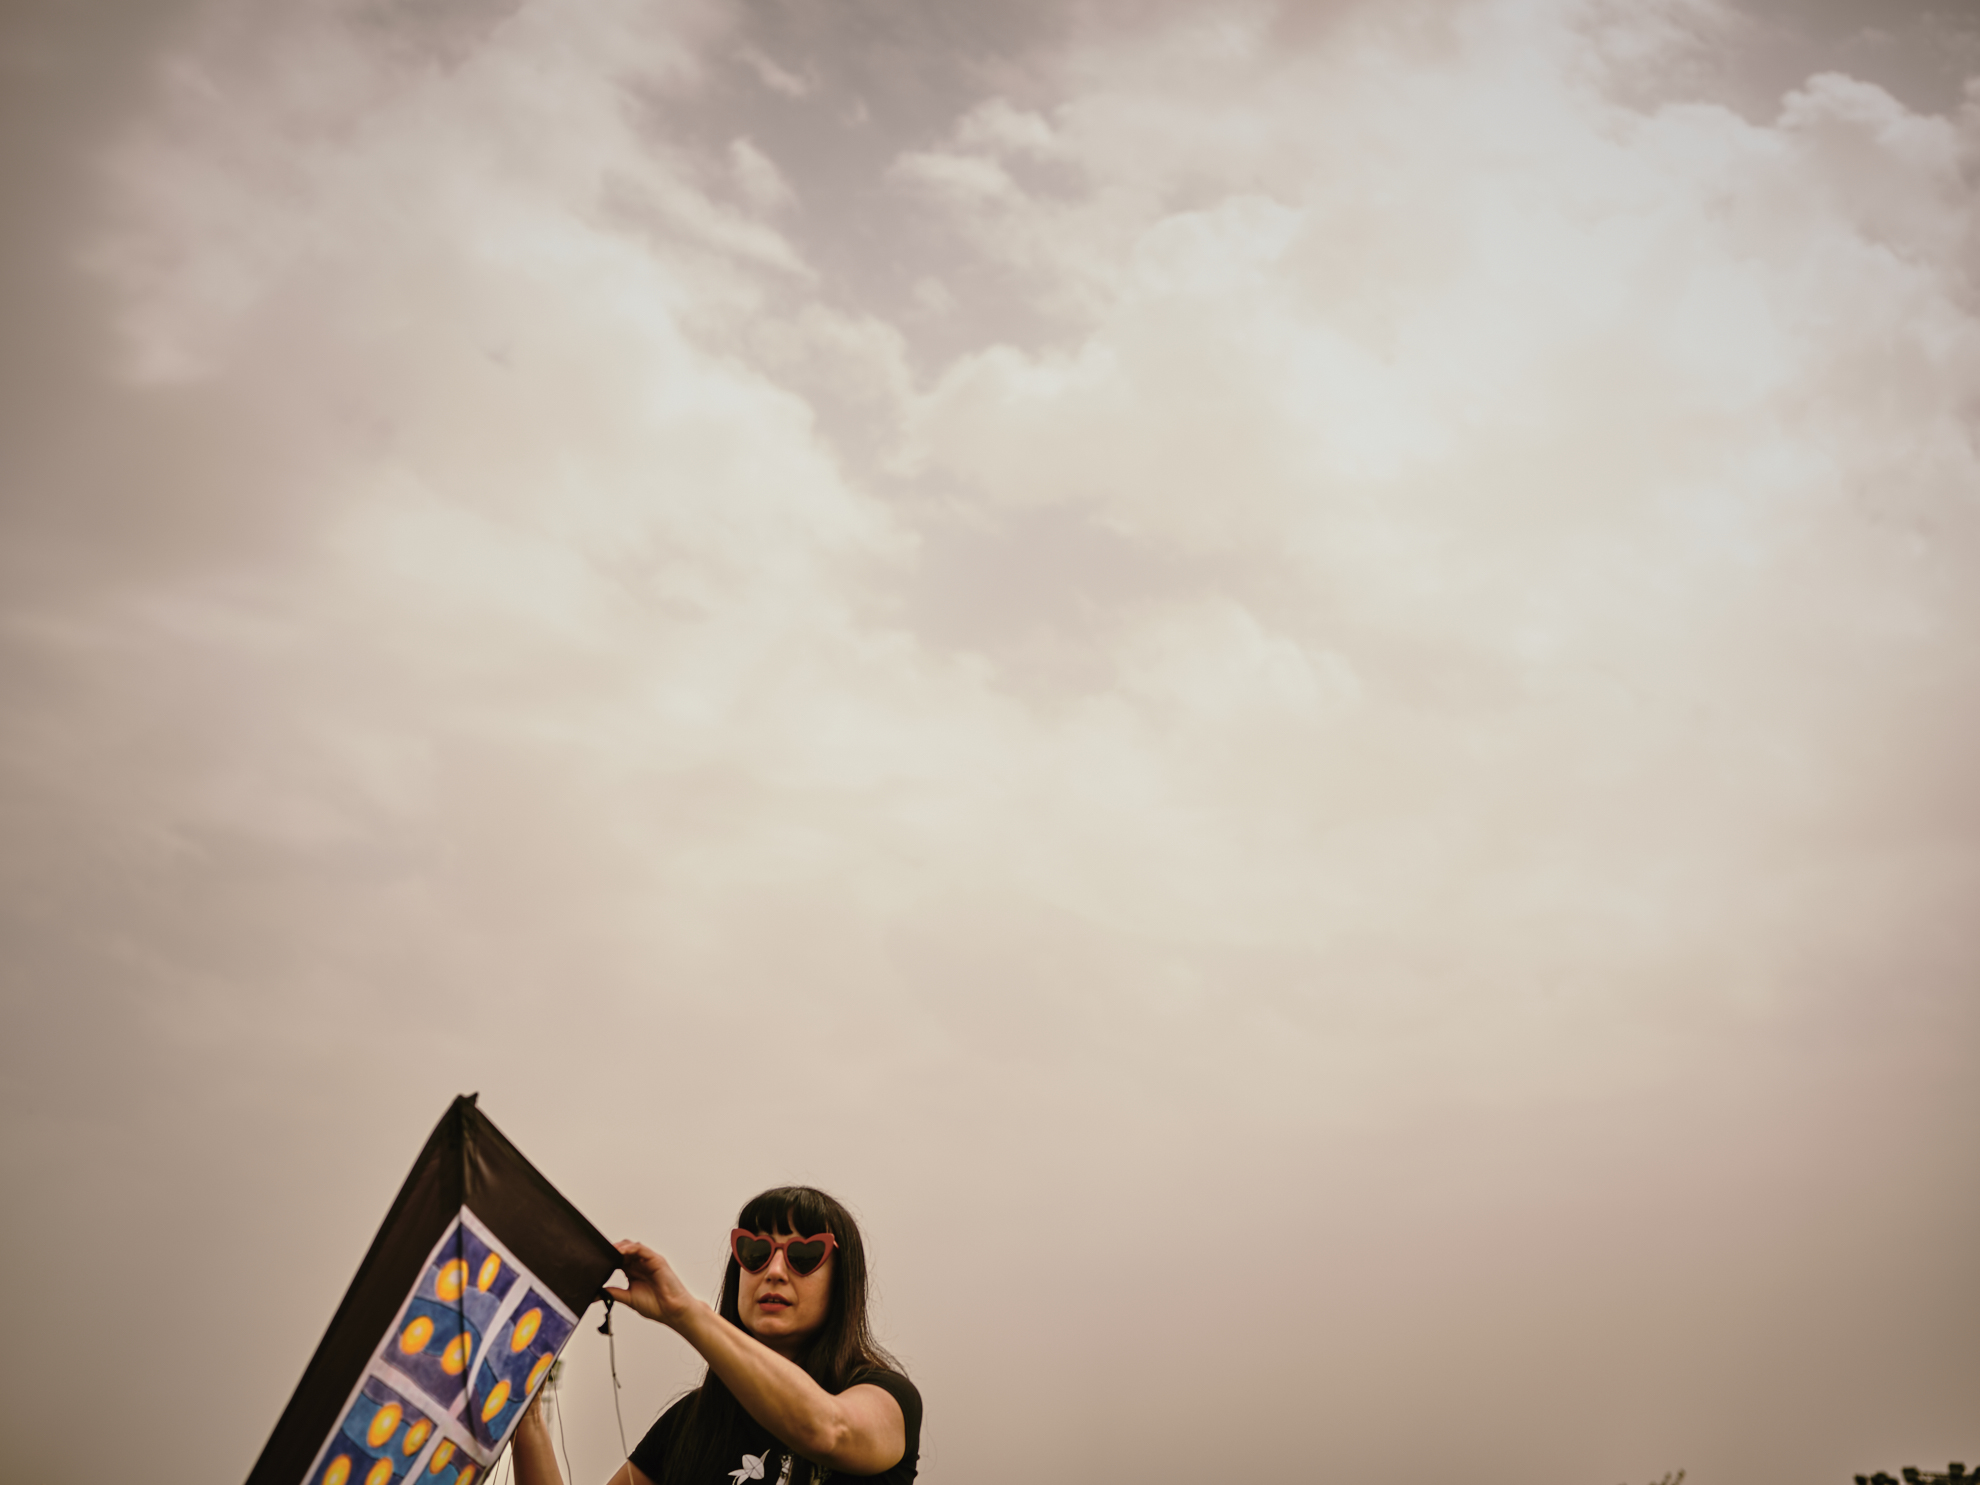 aspire kite festival photography caterina capelli artevento